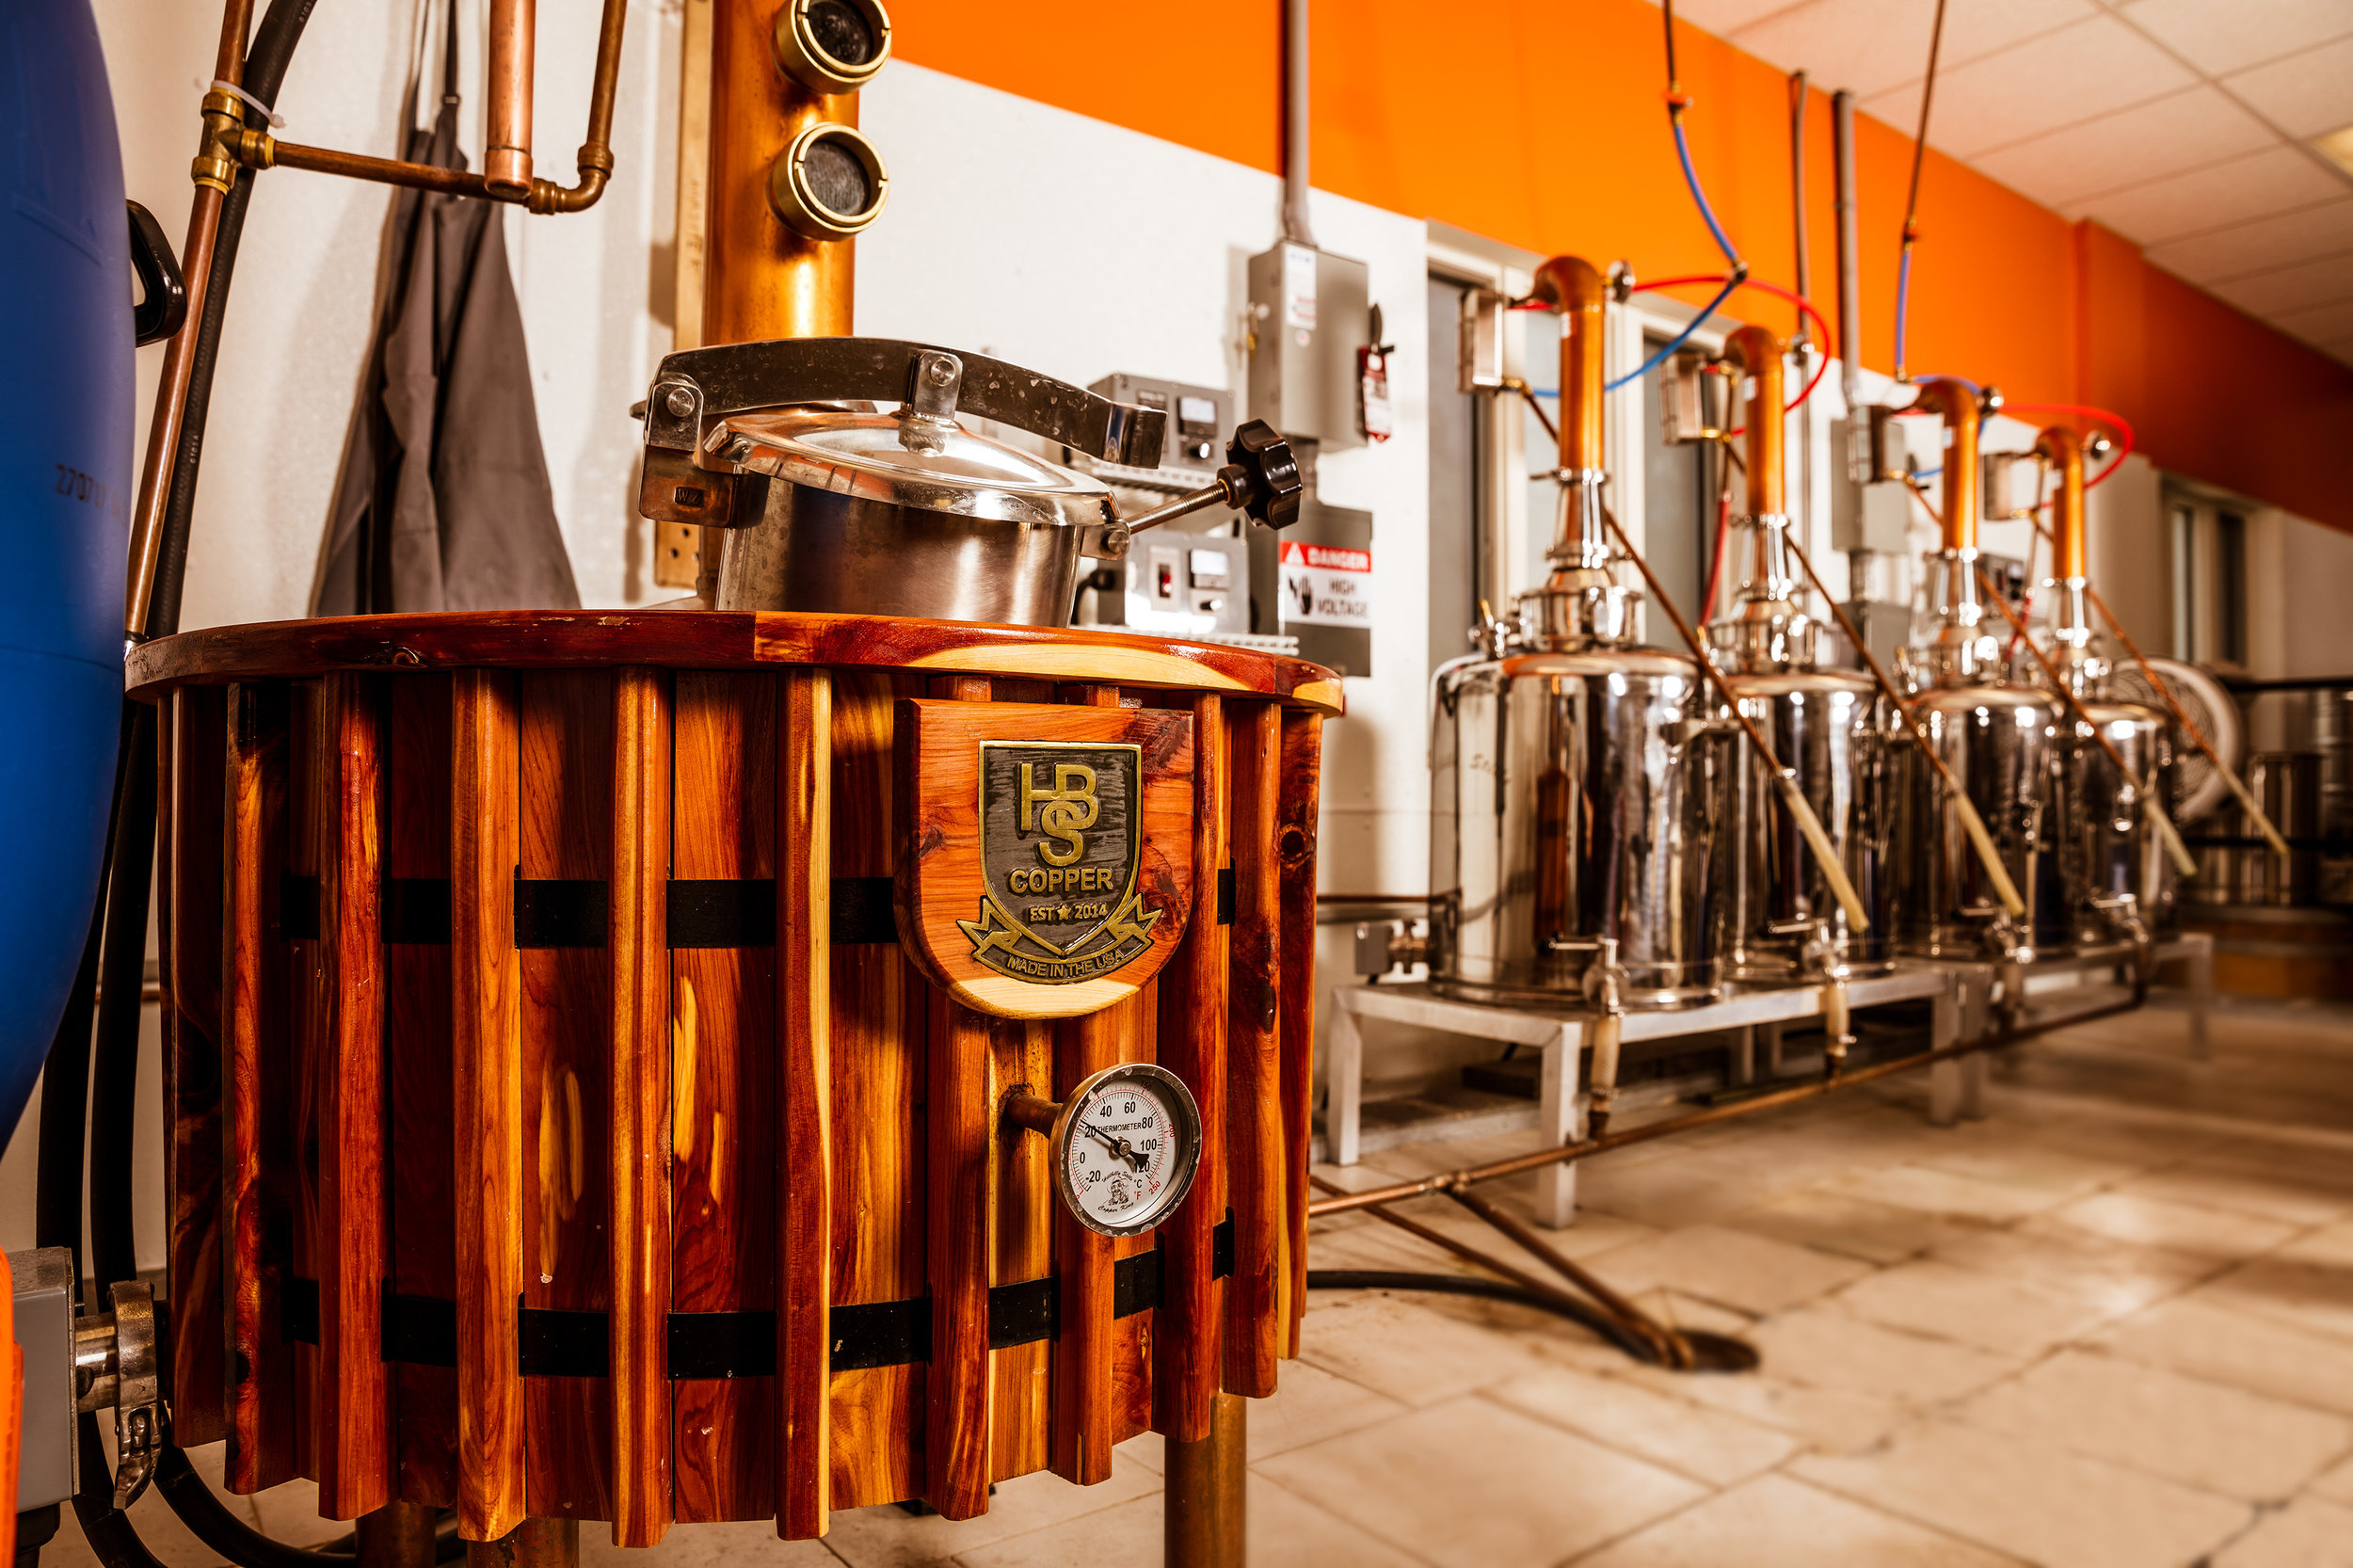 personal tour & Sample Tasting - Join our Master Distiller for an in-depth behind the scenes tour of our distillery production areas and barrel house, located in the picturesque town of Emmaus, PA.